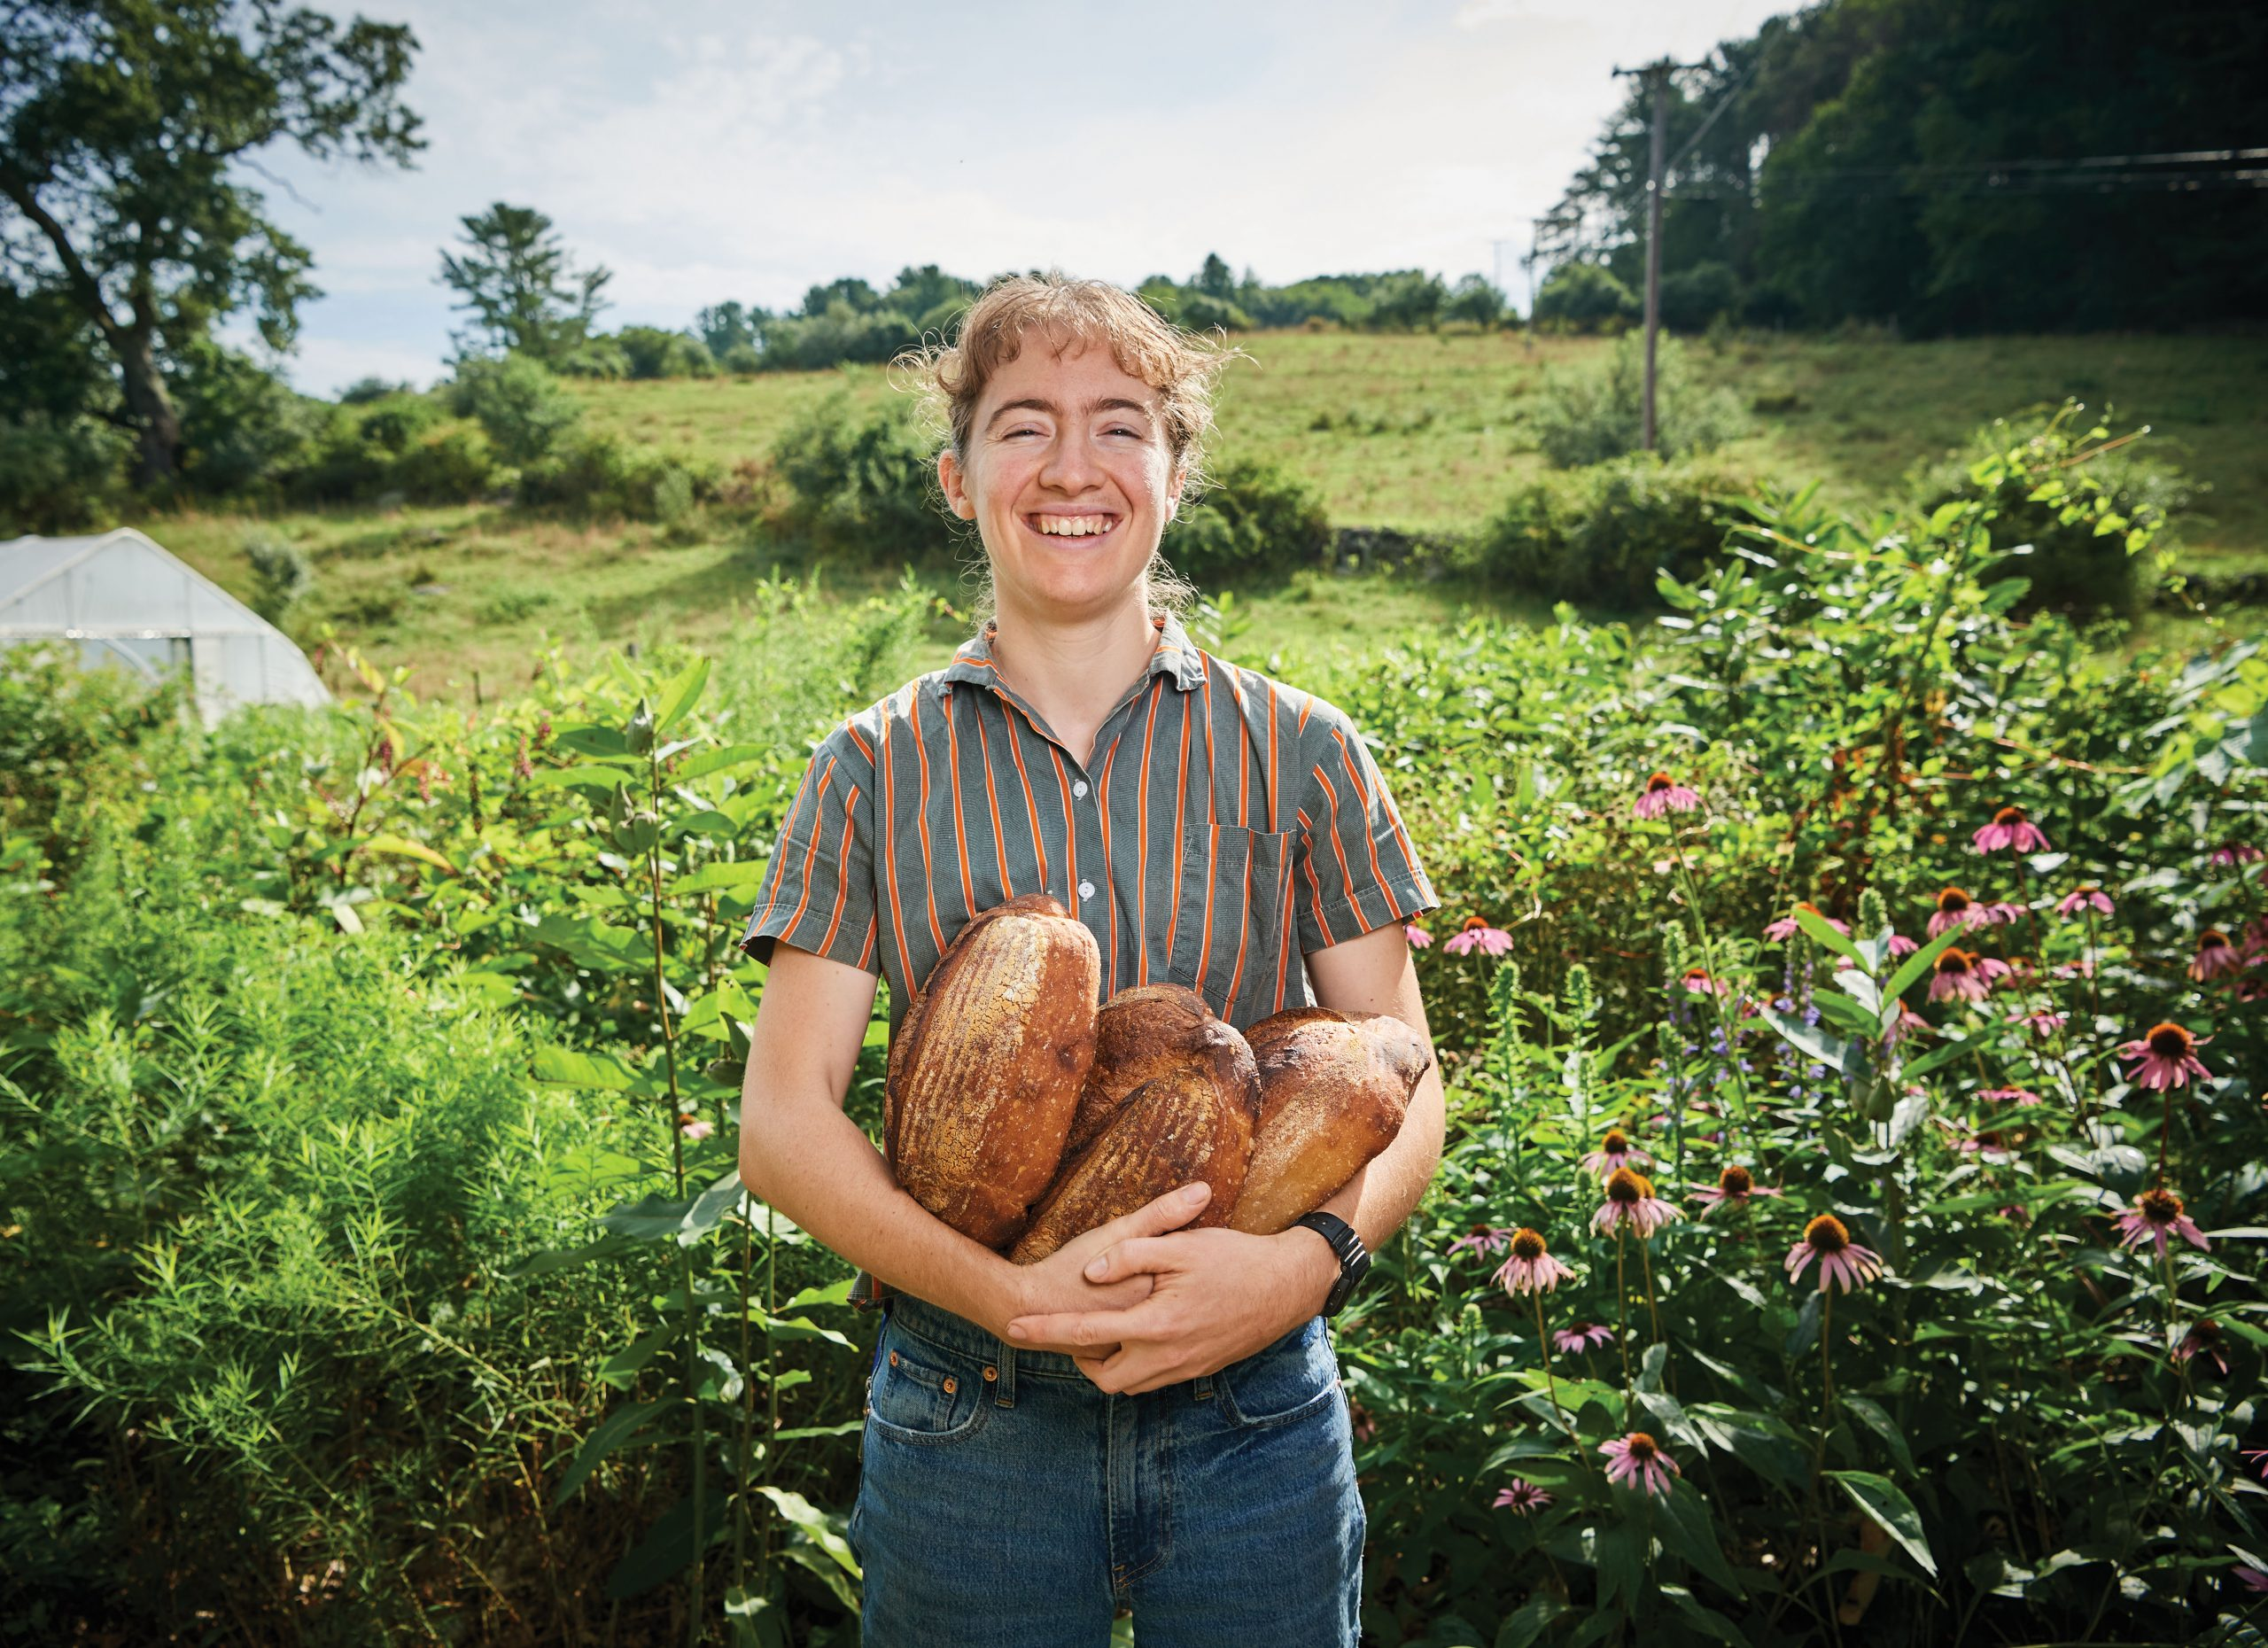 Jessica Larkin-Wells smiling broadly and holding loaves of sourdough bread while standing outdoors at Spring Valley Student Farm